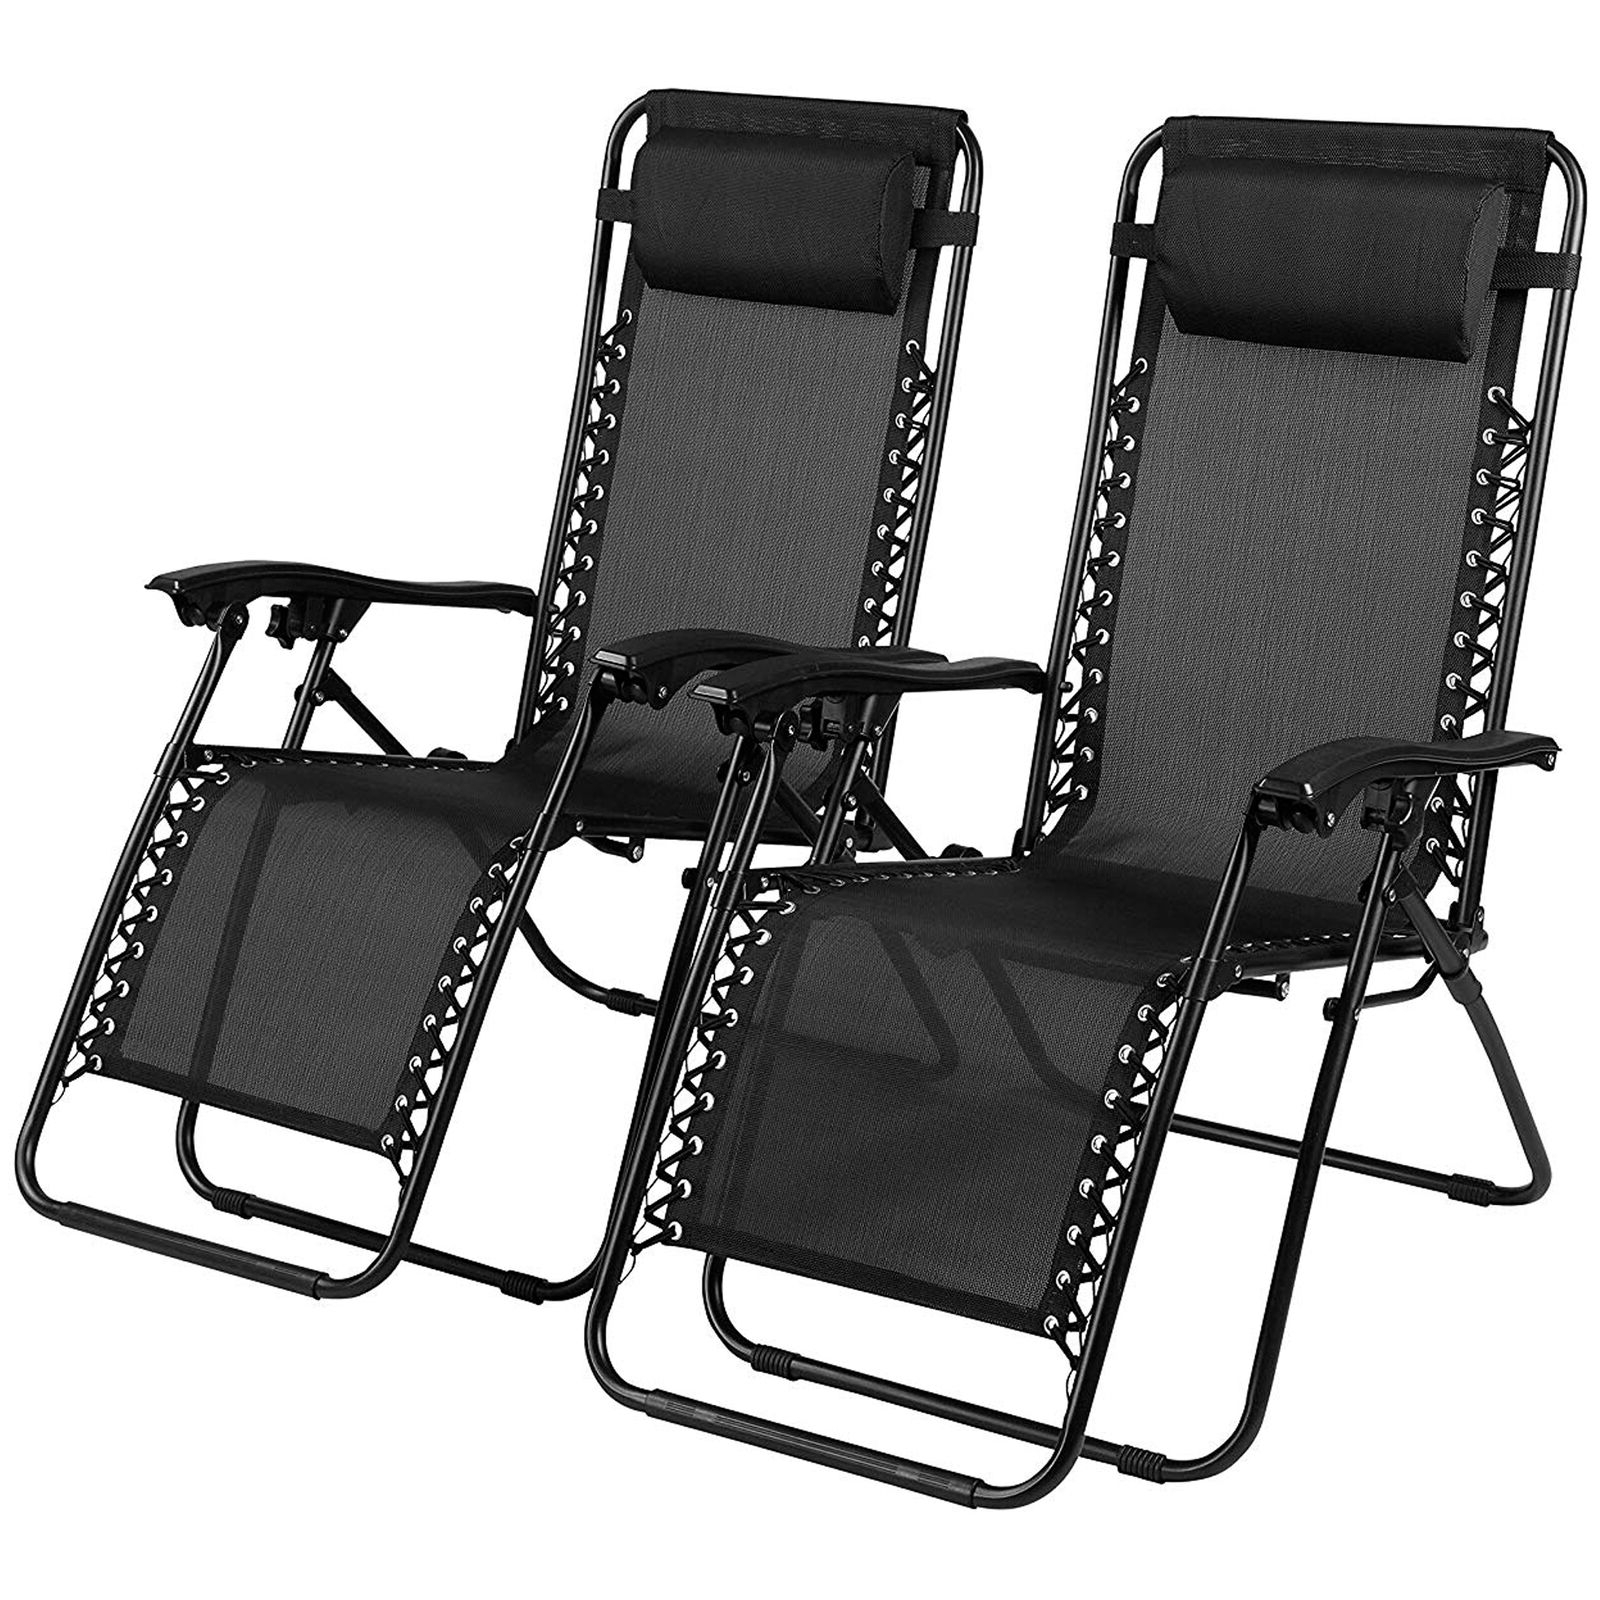 Zero Gravity Chair Sun Lounger Outdoor Garden Folding Reclining Adjustable X 2 Throughout Favorite Deluxe Padded Chairs With Canopy And Tray (View 23 of 25)